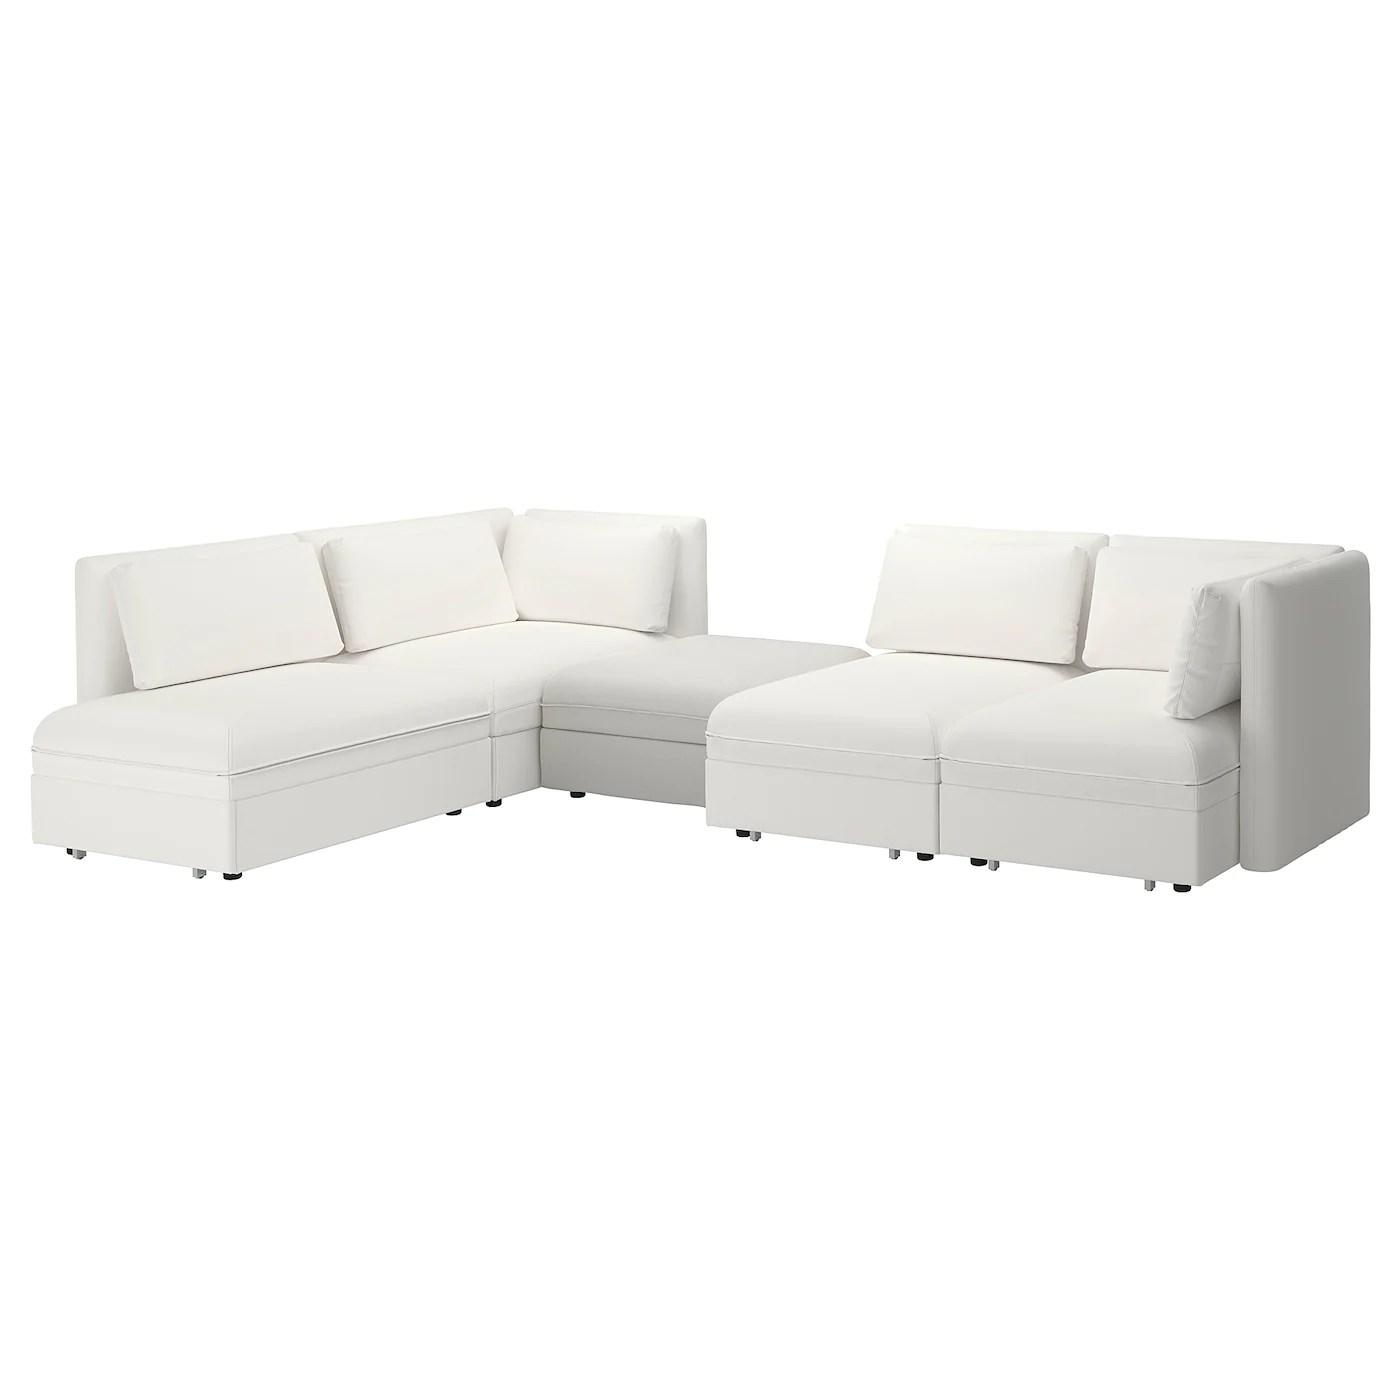 Vallentuna 4 Seat Modular Sofa With 3 Beds Vallentuna 4 Seat Modular Sofa W 3 Sofa Beds And Storage Murum Ramna White Light Grey